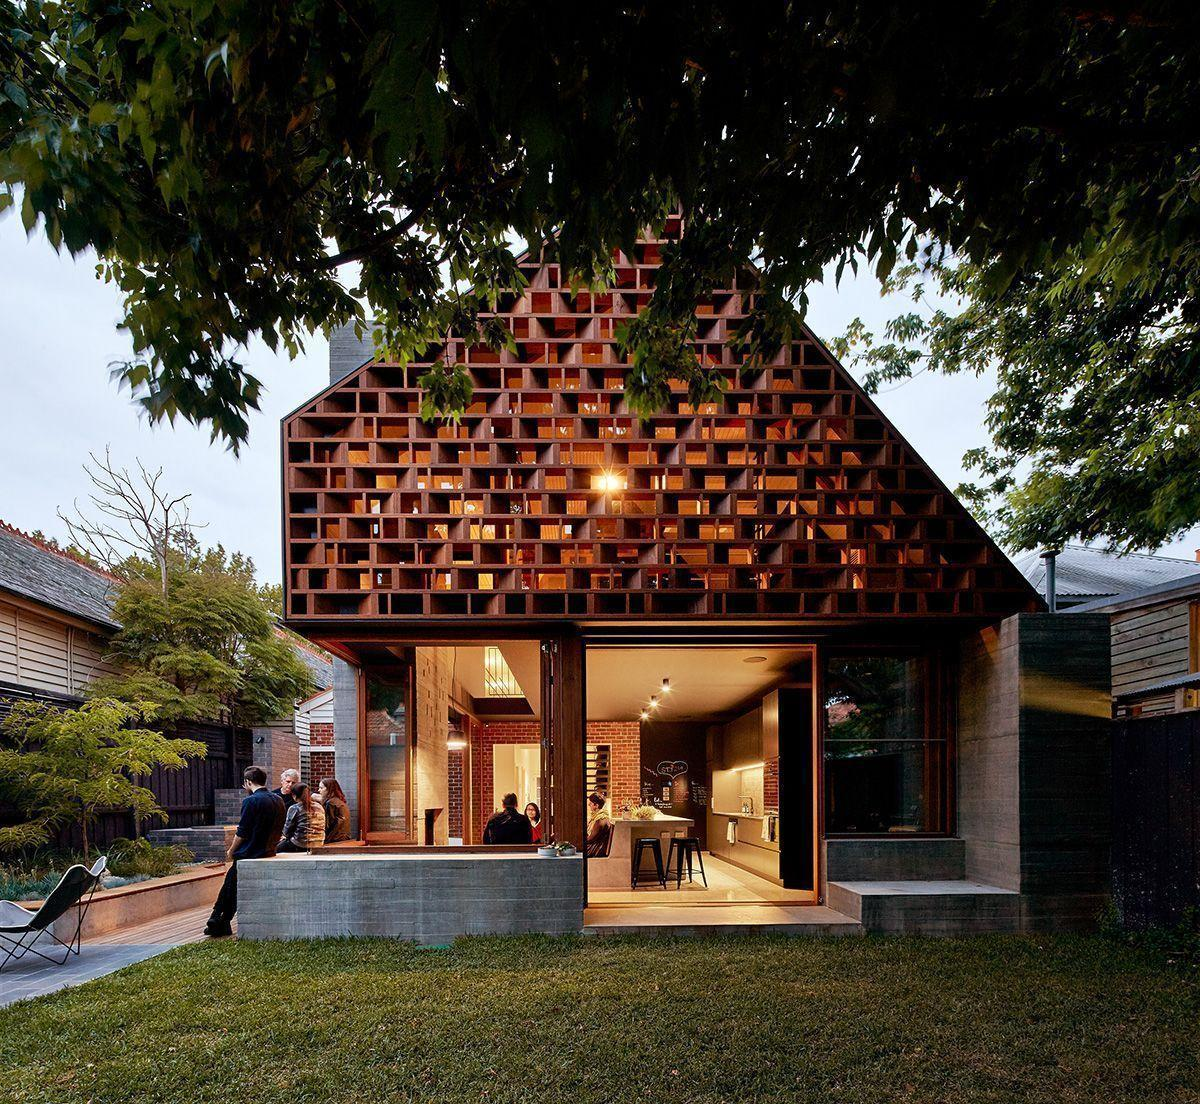 """Foto: Reprodução / <a href=""""http://www.makearchitecture.com.au/projects/featured/local-house"""" target=""""_blank"""">MAKE architecture</a>"""